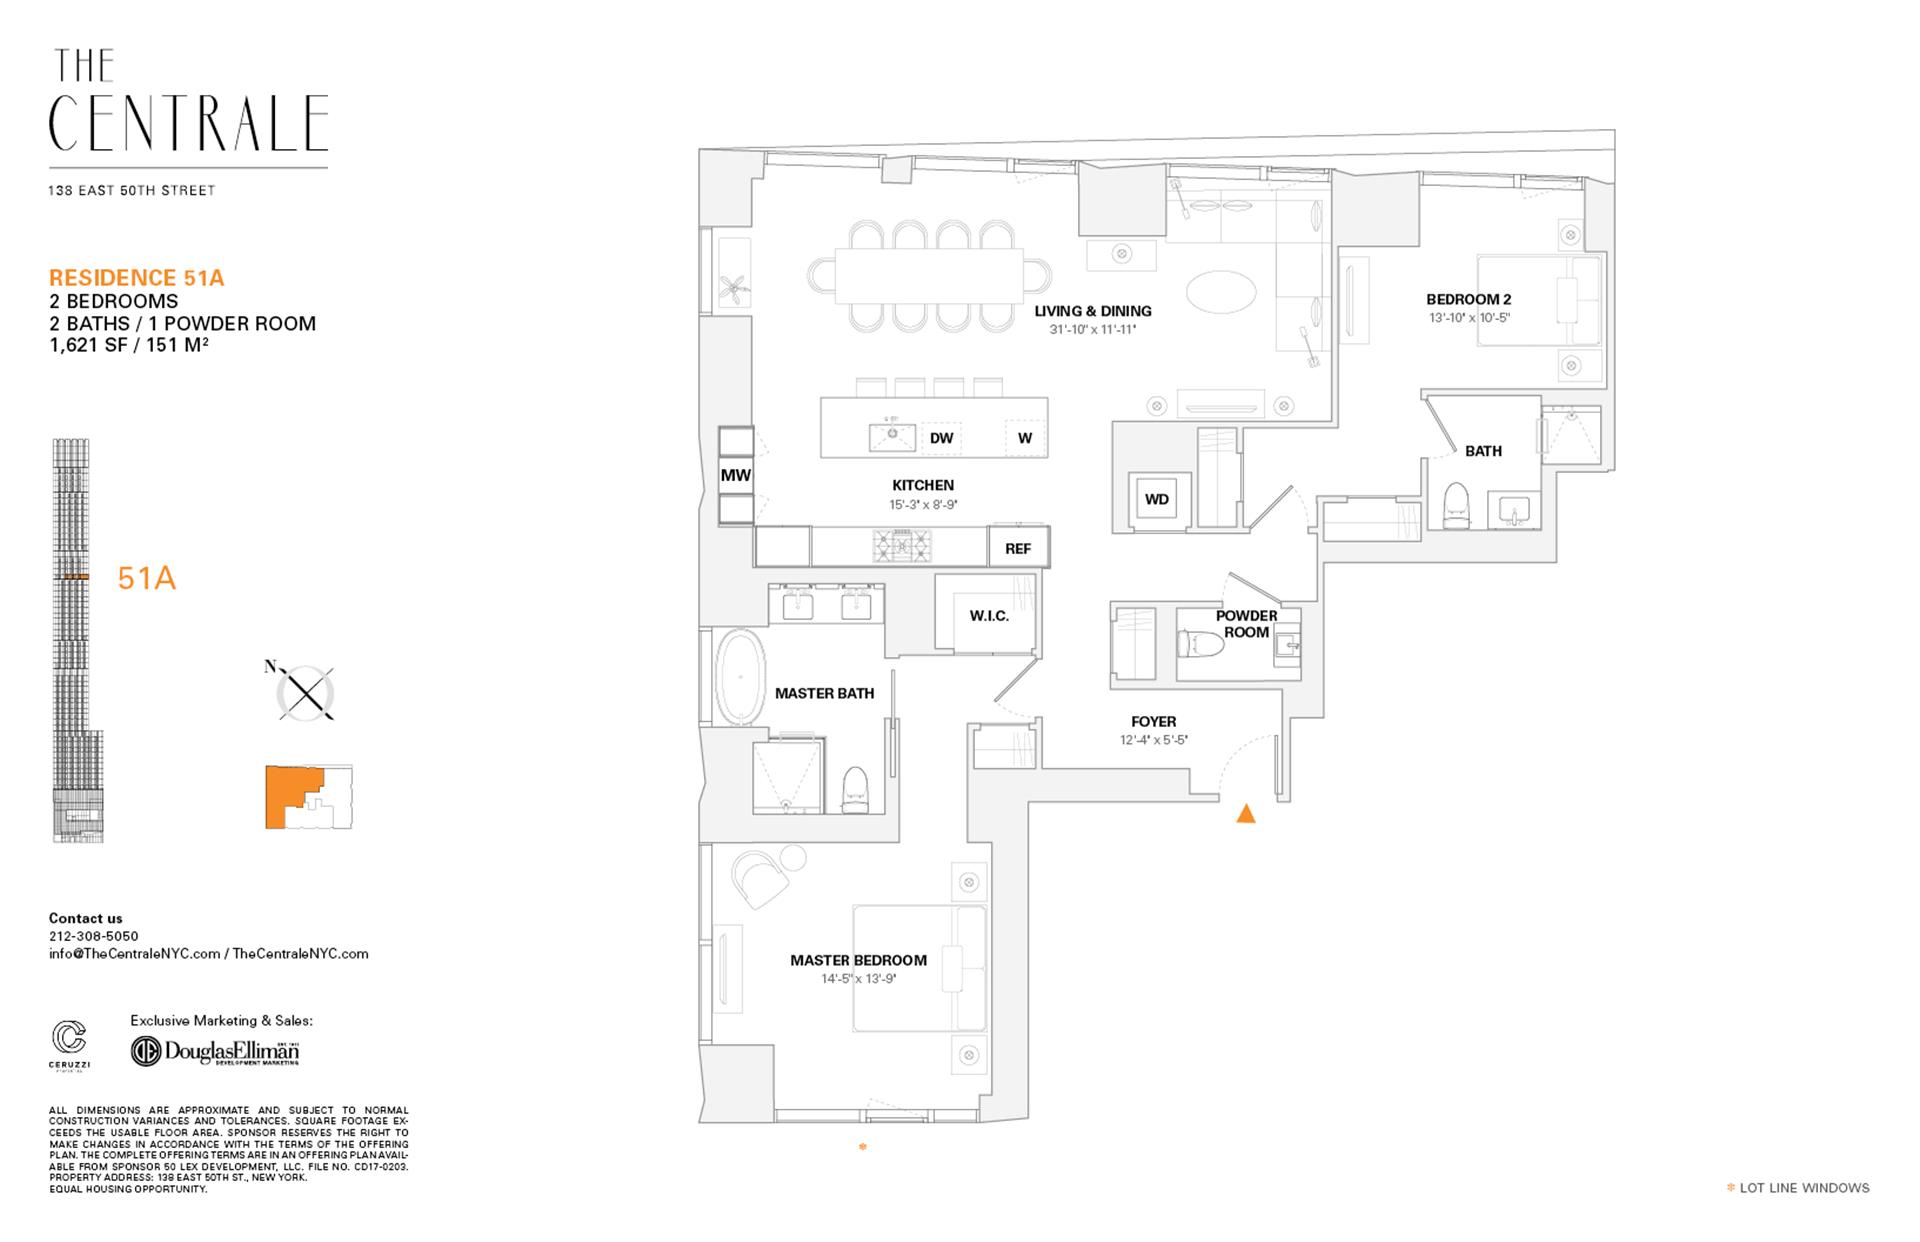 Floor plan of The Centrale, 138 East 50th Street, 51A - Midtown, New York